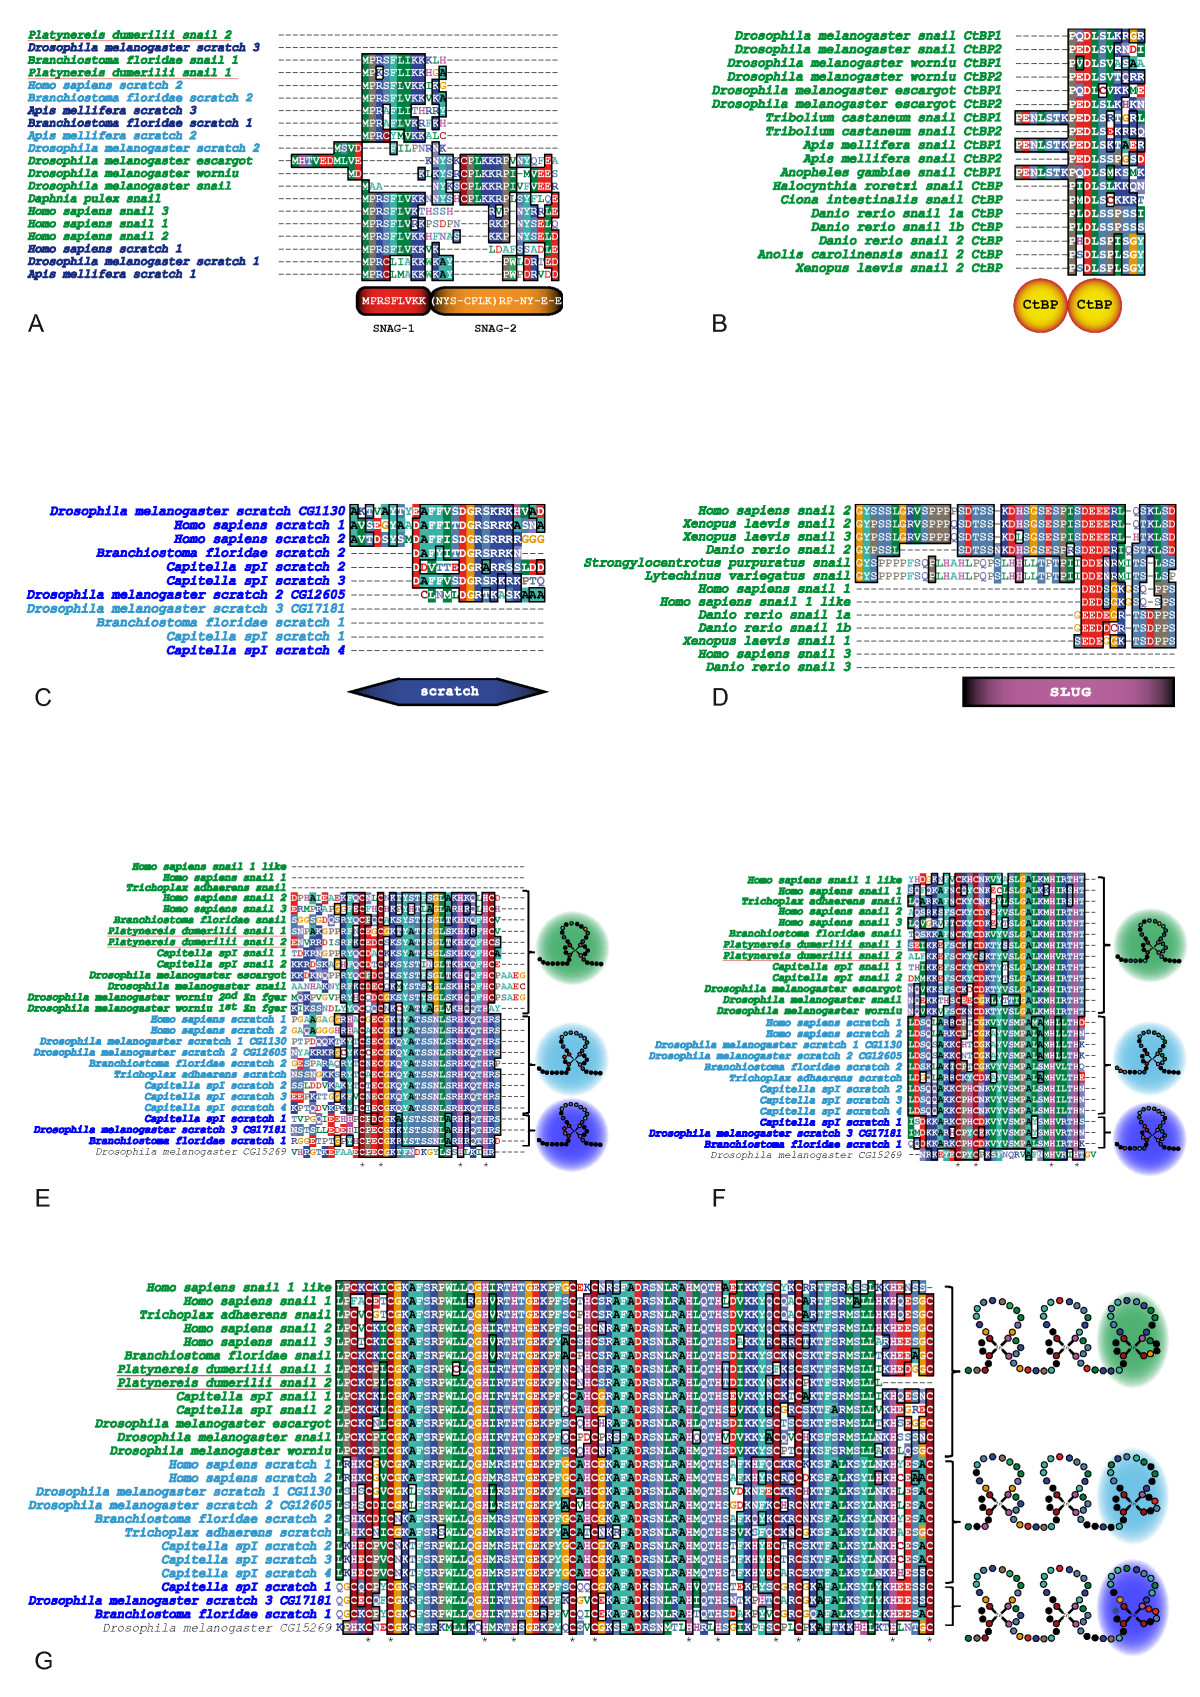 https://static-content.springer.com/image/art%3A10.1186%2F1471-2148-9-94/MediaObjects/12862_2008_Article_1008_Fig3_HTML.jpg